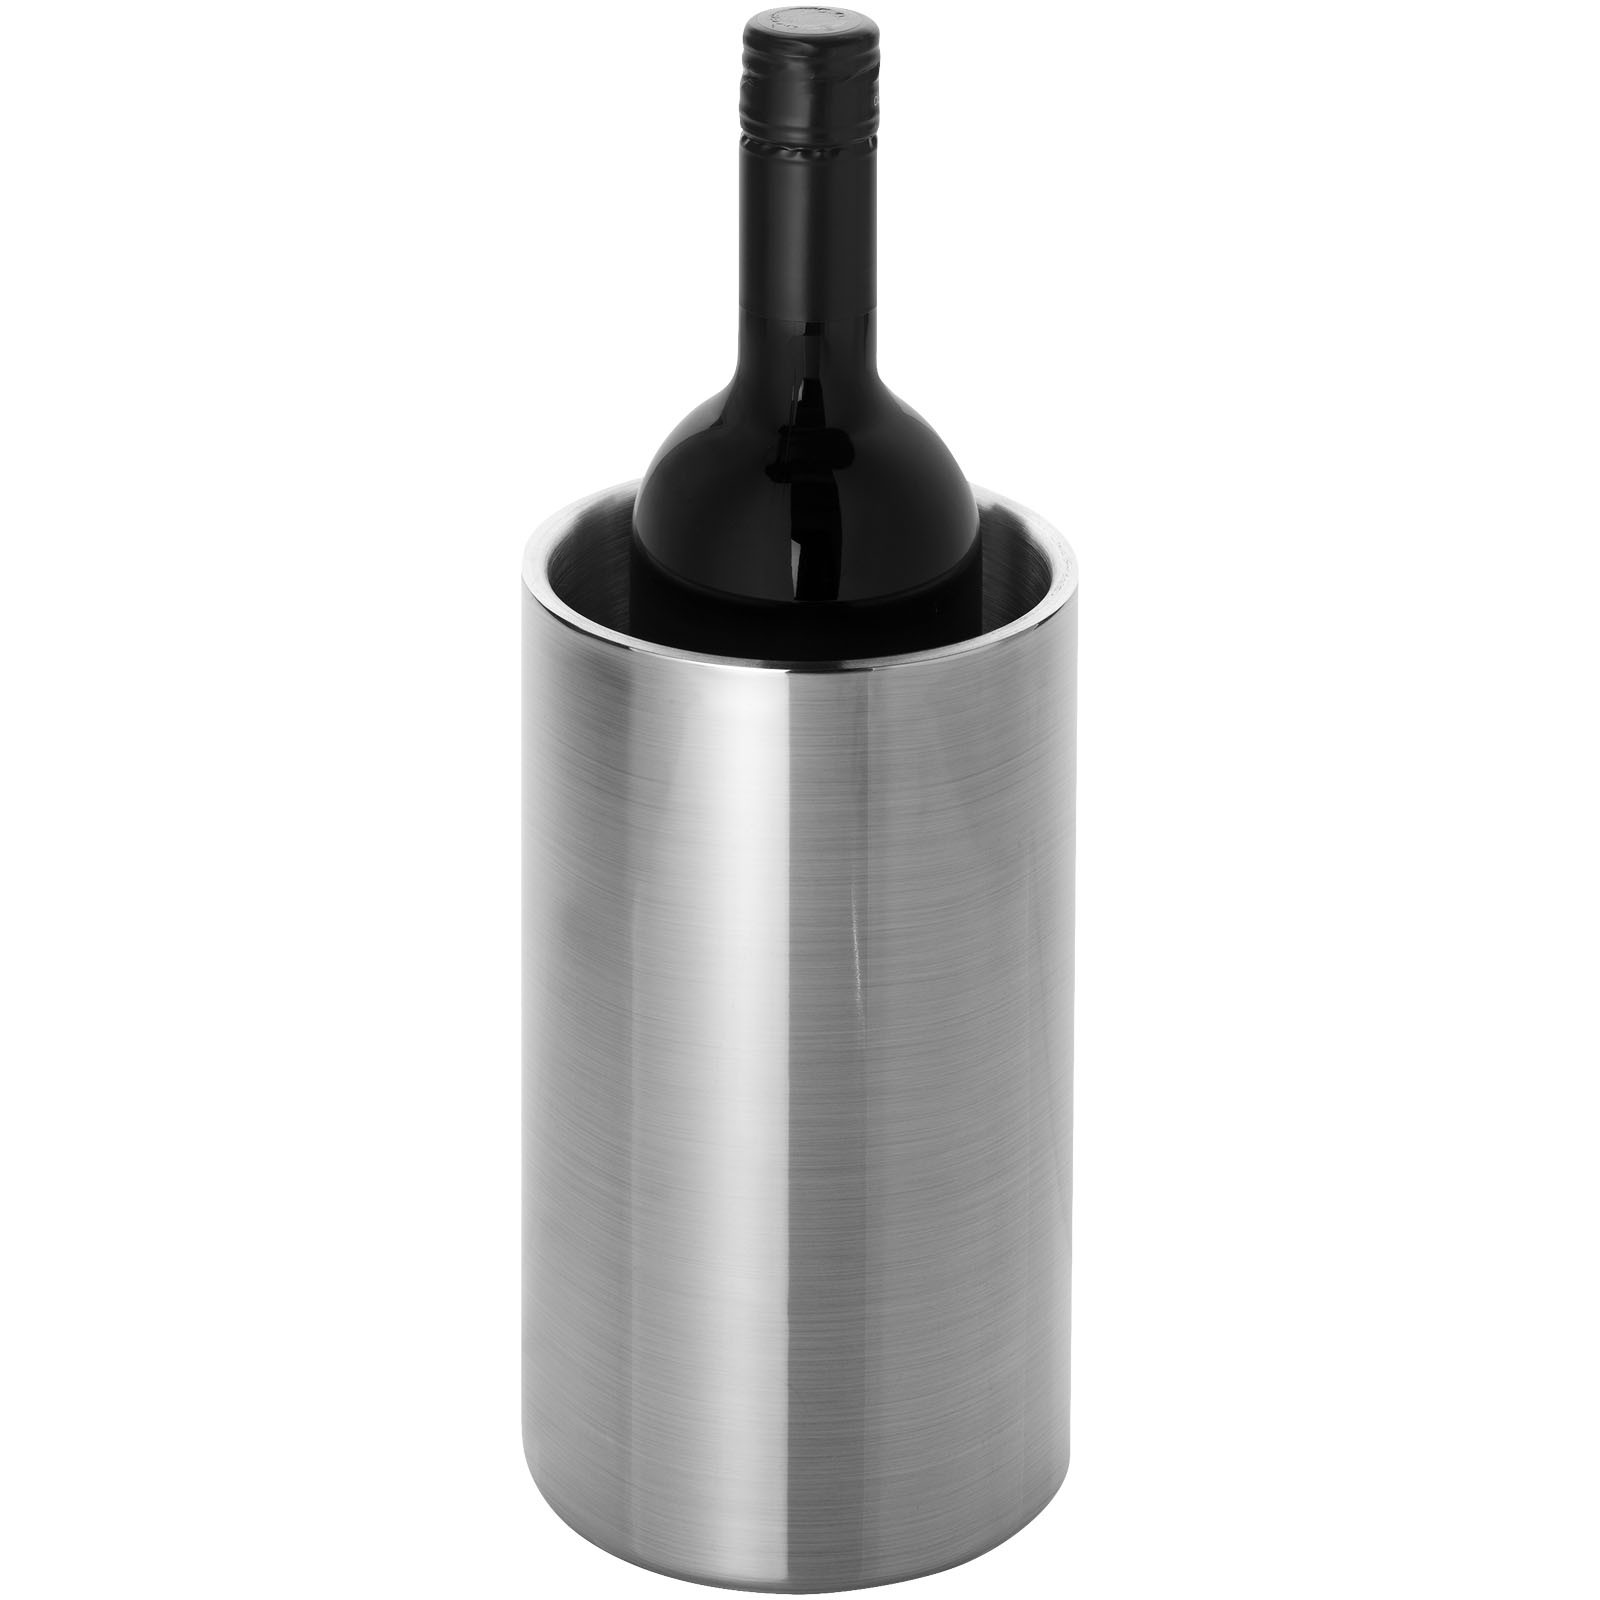 Cielo double-walled stainless steel wine cooler